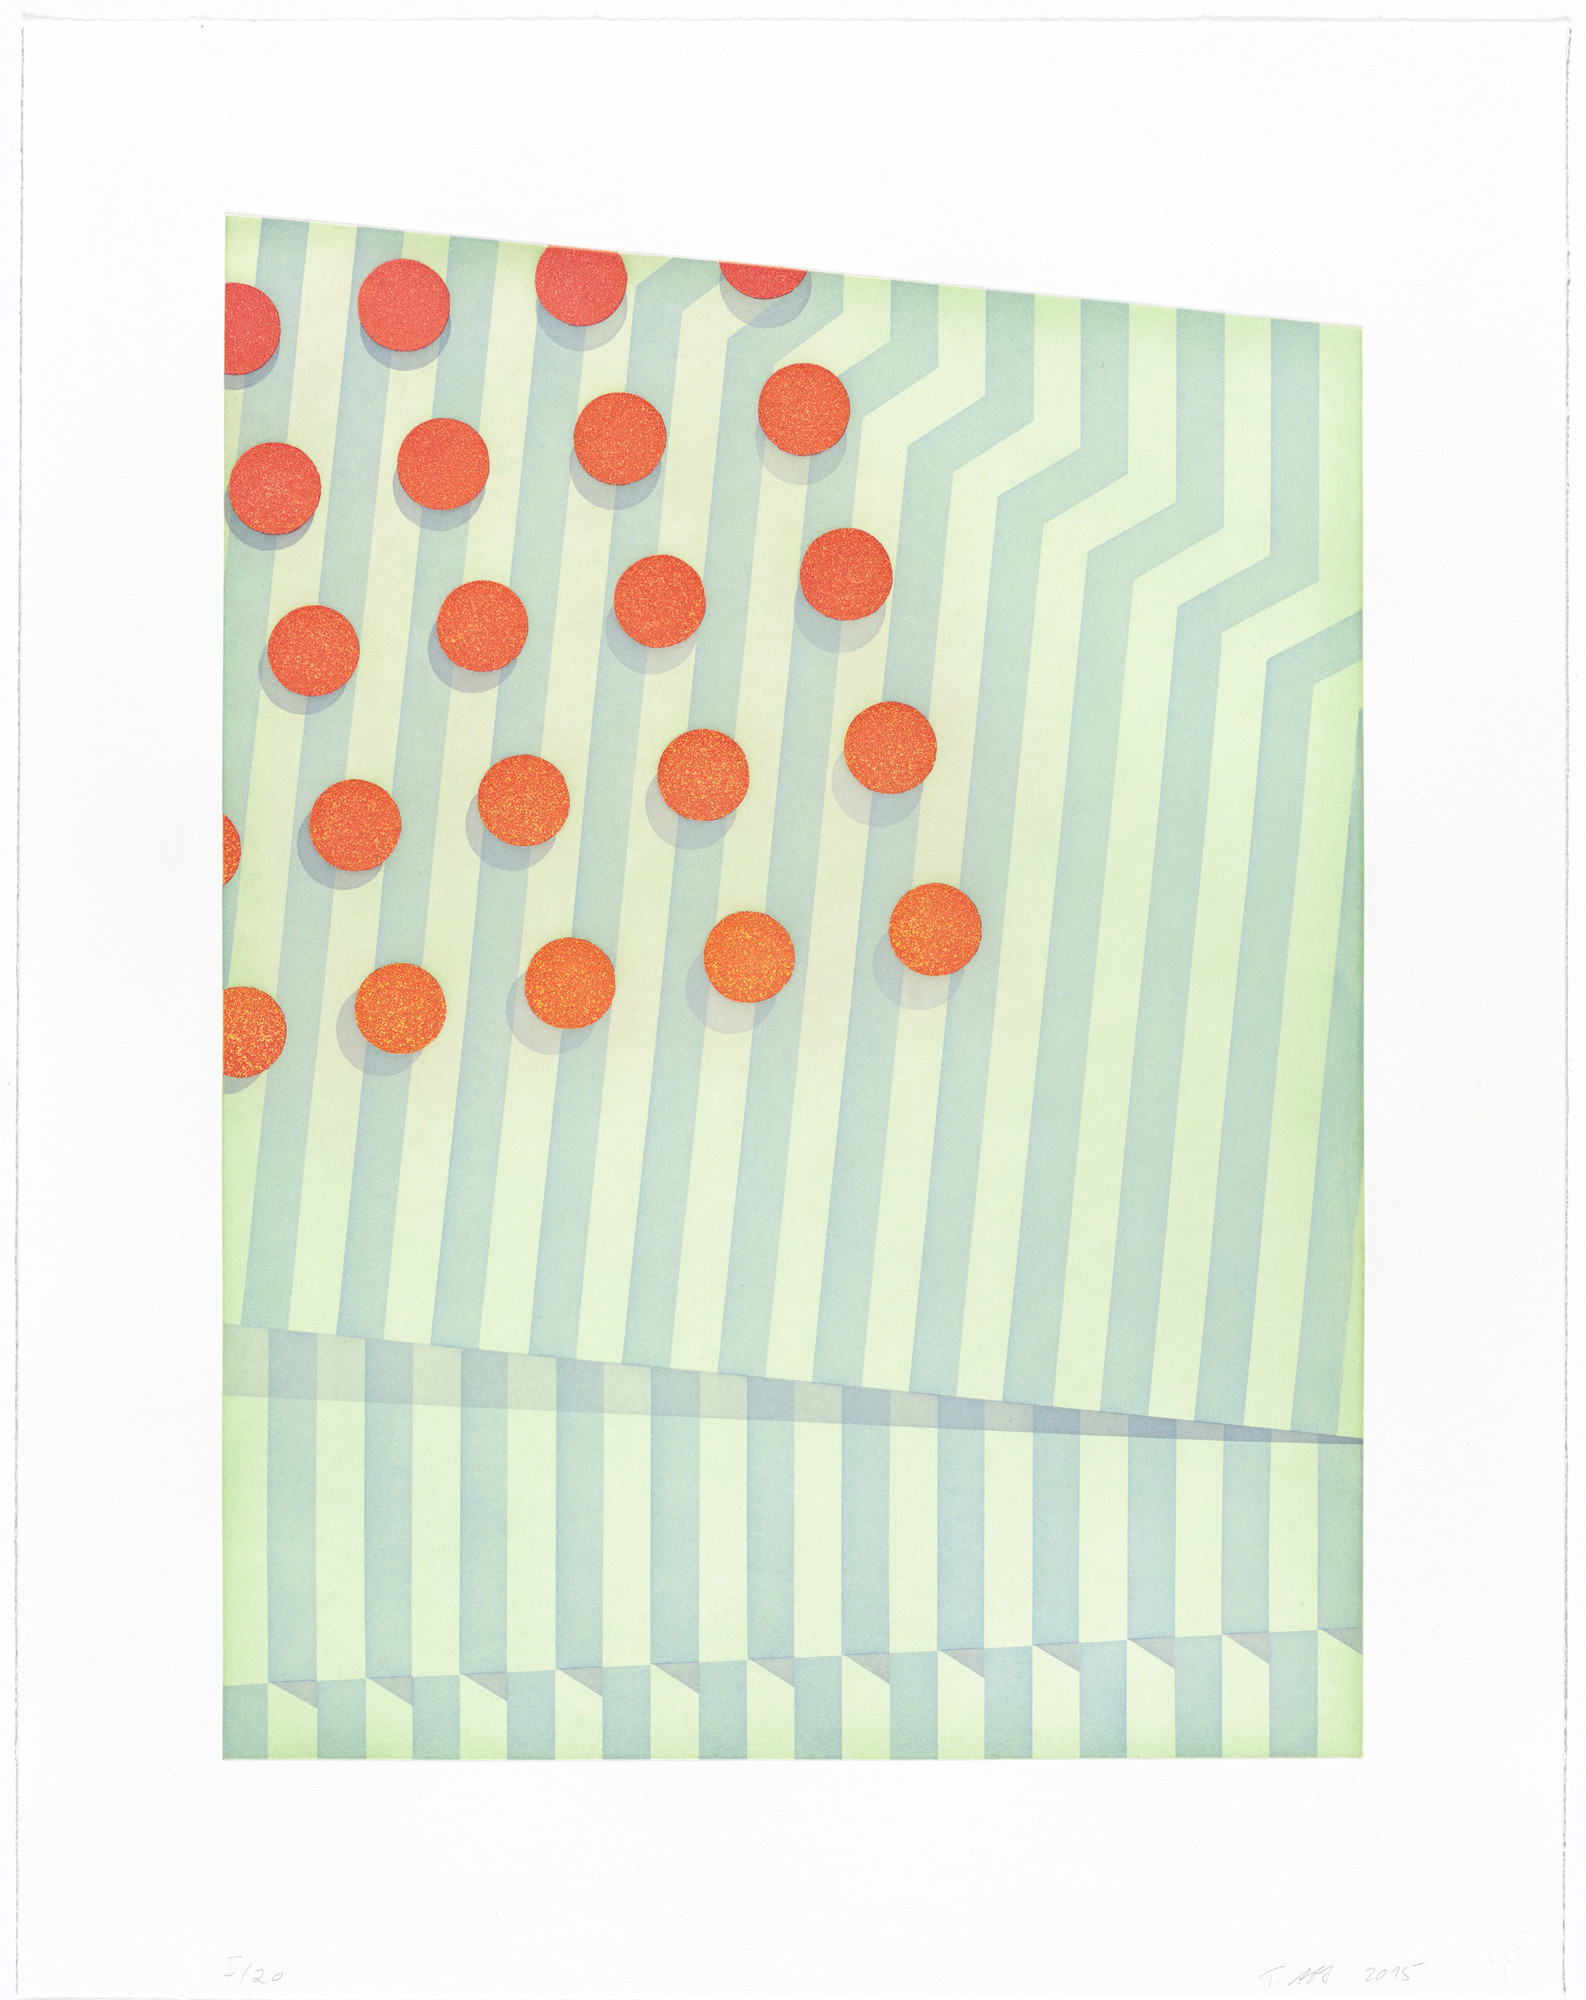 Tomma Abts. Untitled (small circles). 2015